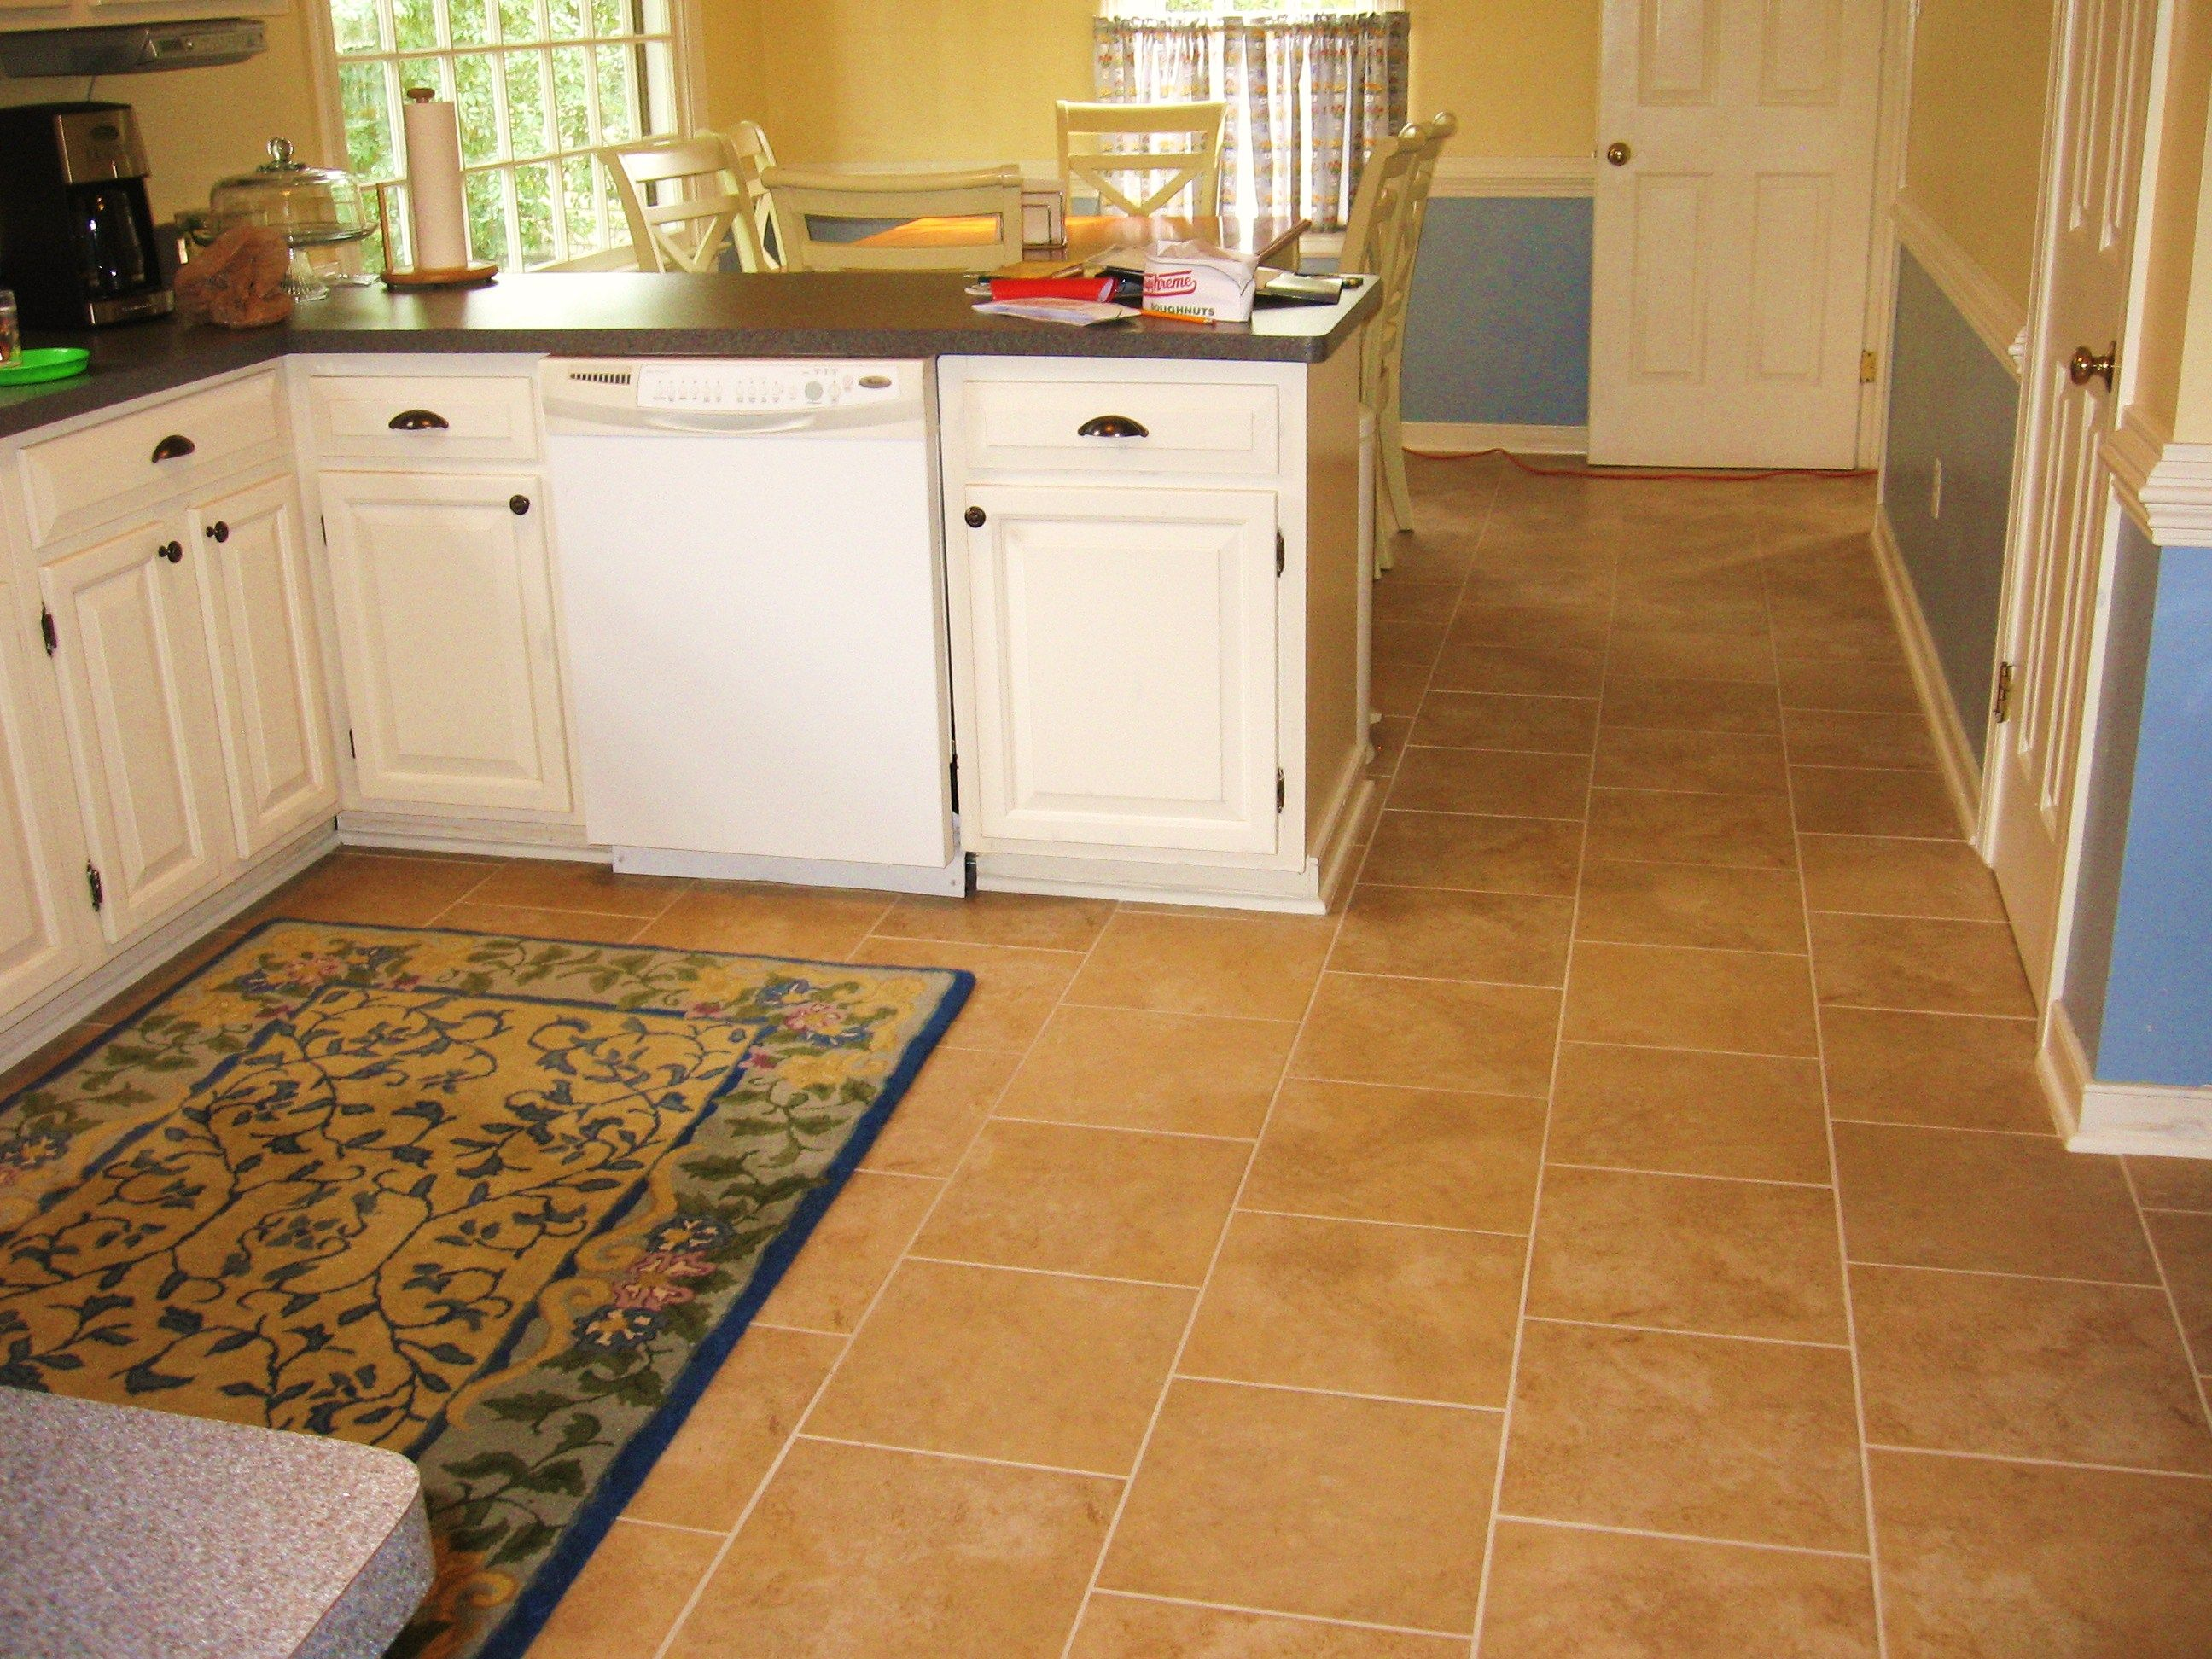 tile flooring for kitchen pull knobs cabinets besf ideas tiles modern home design